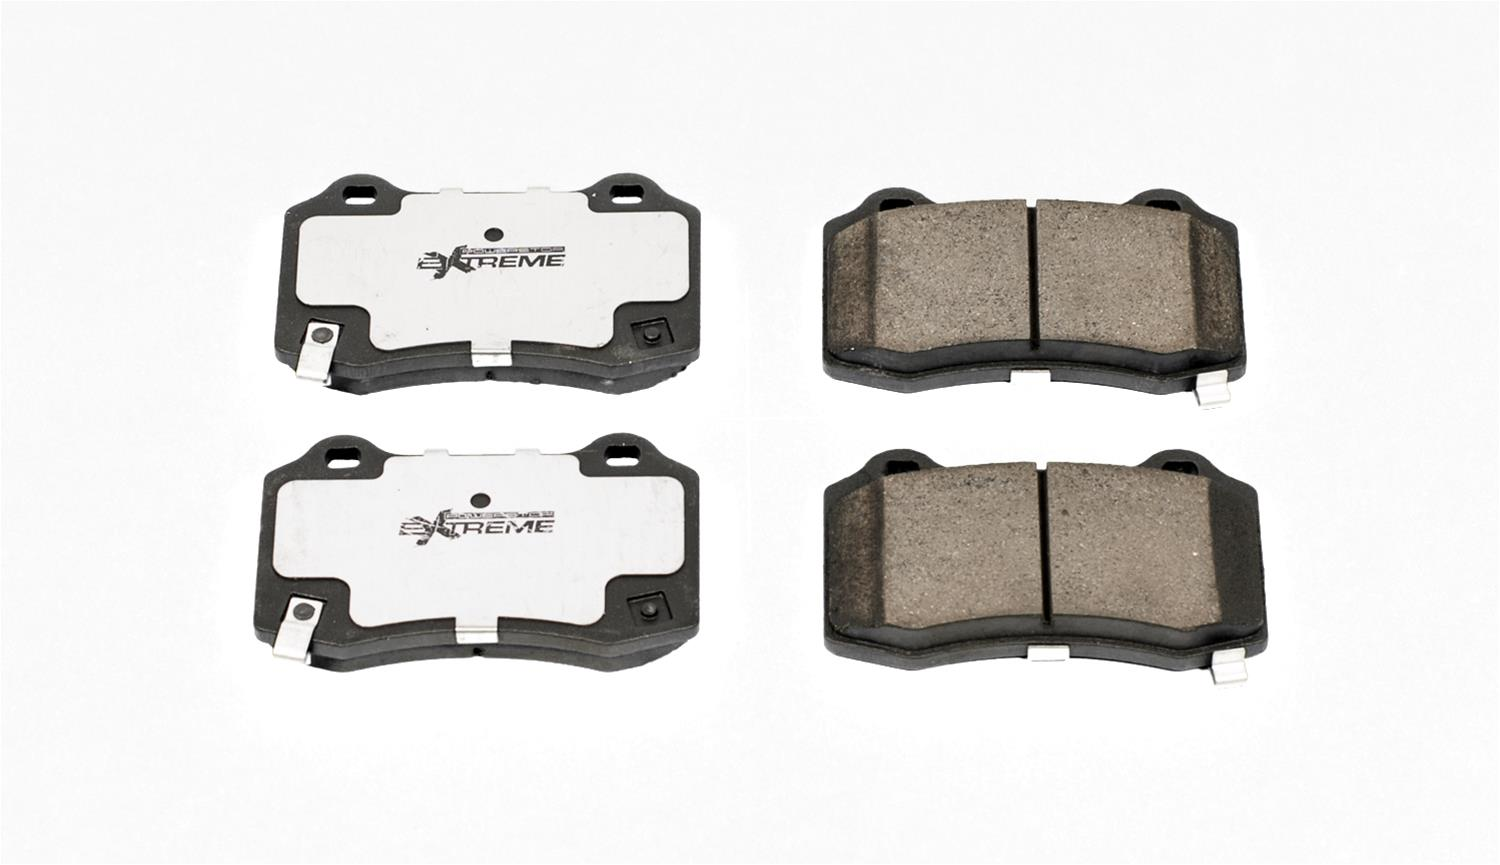 Power Stop Z26 Street Warrior Carbon Fiber-Ceramic Brake Pads Z26-1053 -  Free Shipping on Orders Over $99 at Summit Racing